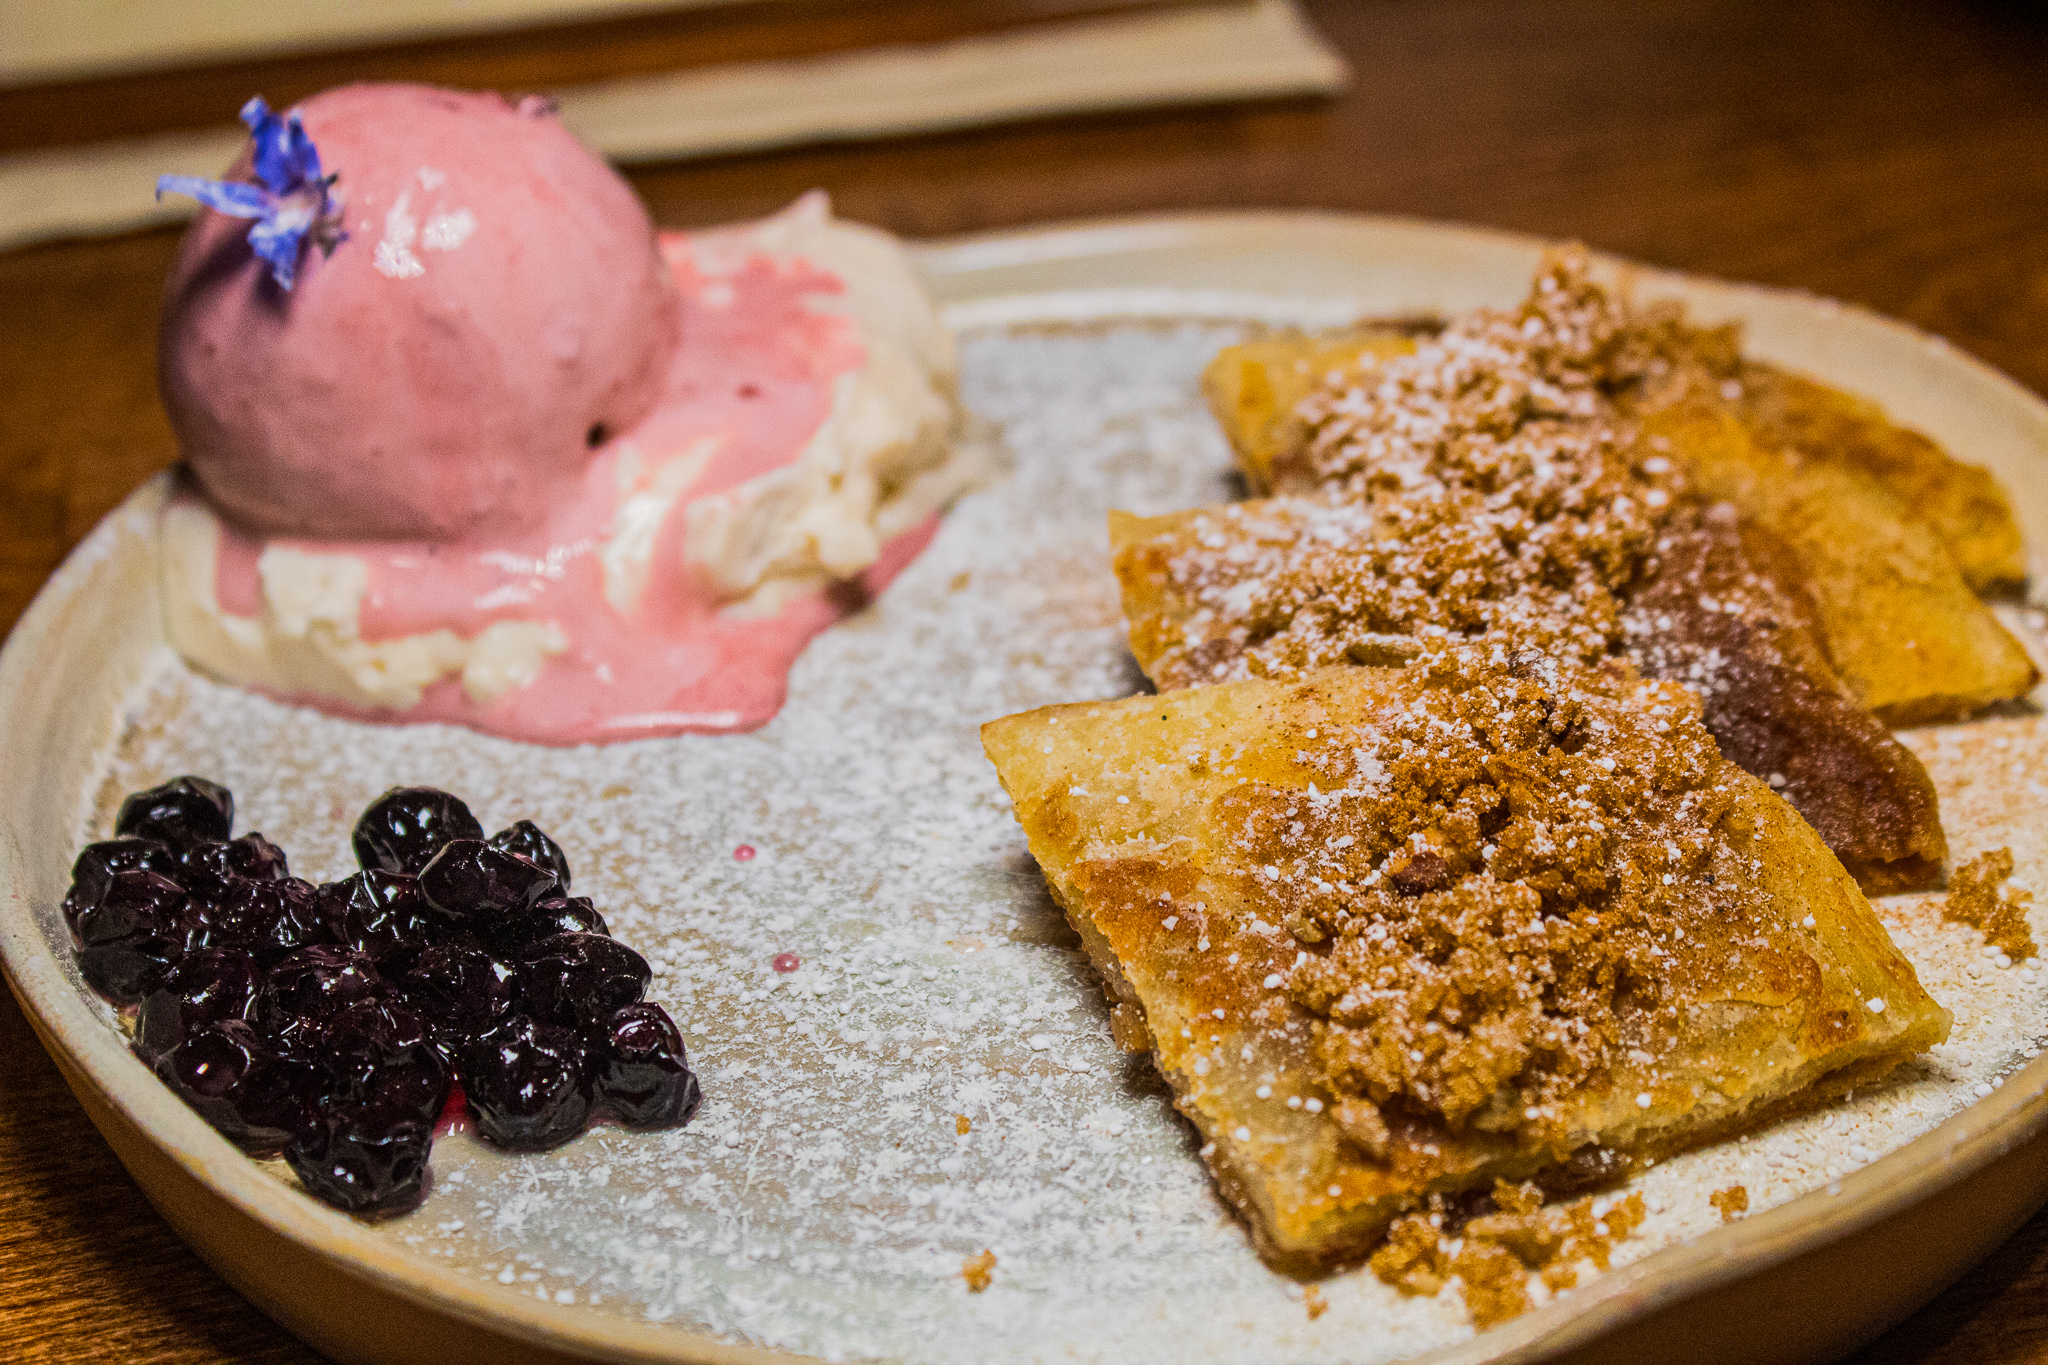 Hotteok - Korean sweet pancake, pecan, walnut, sunflower seed, red bean ice cream, blueberry whipped cream, and blueberry compote